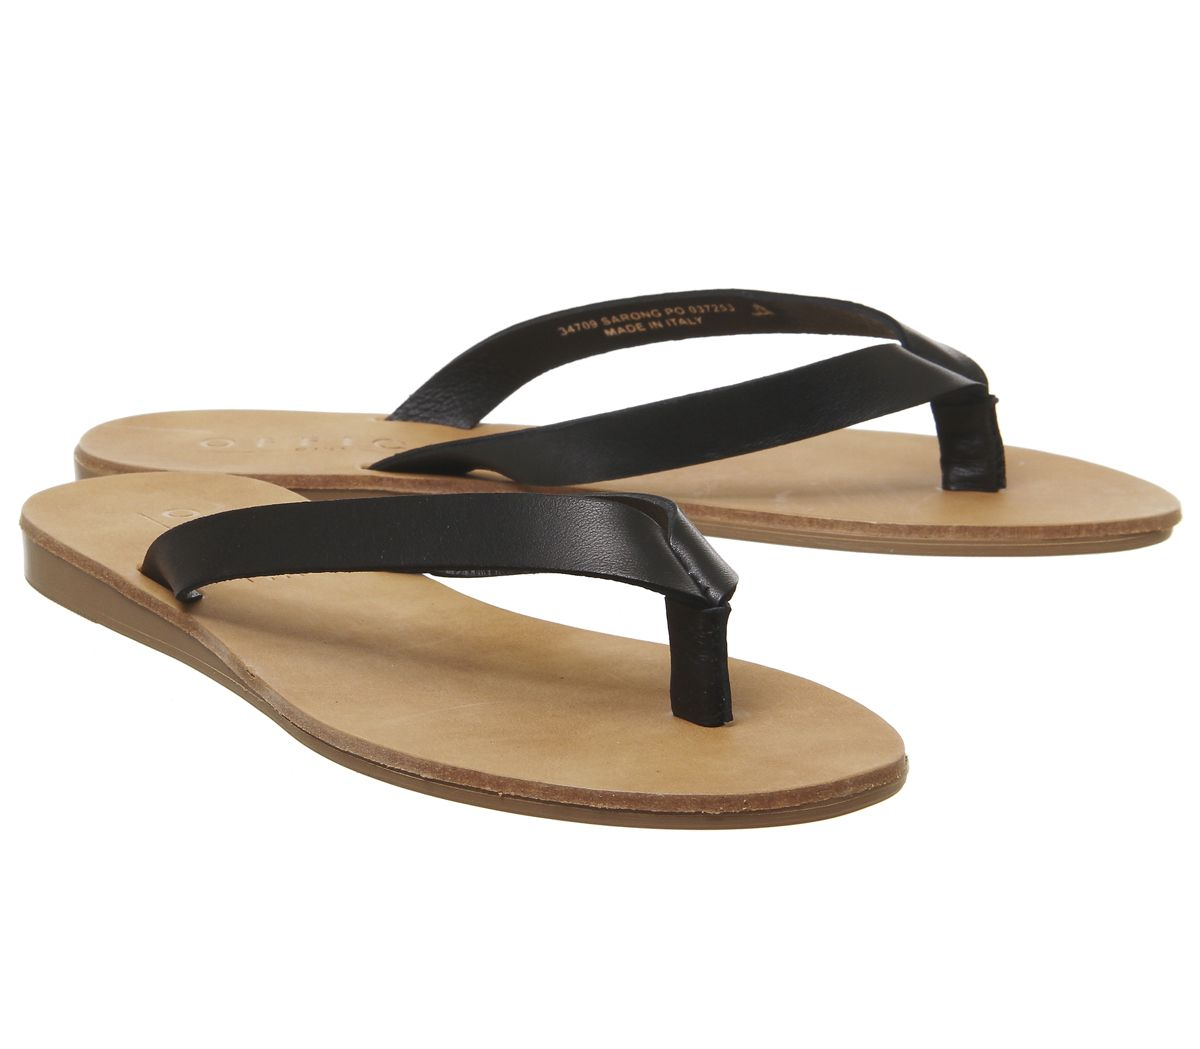 Womens Office Sarong Flip Flops Black Leather Sandals